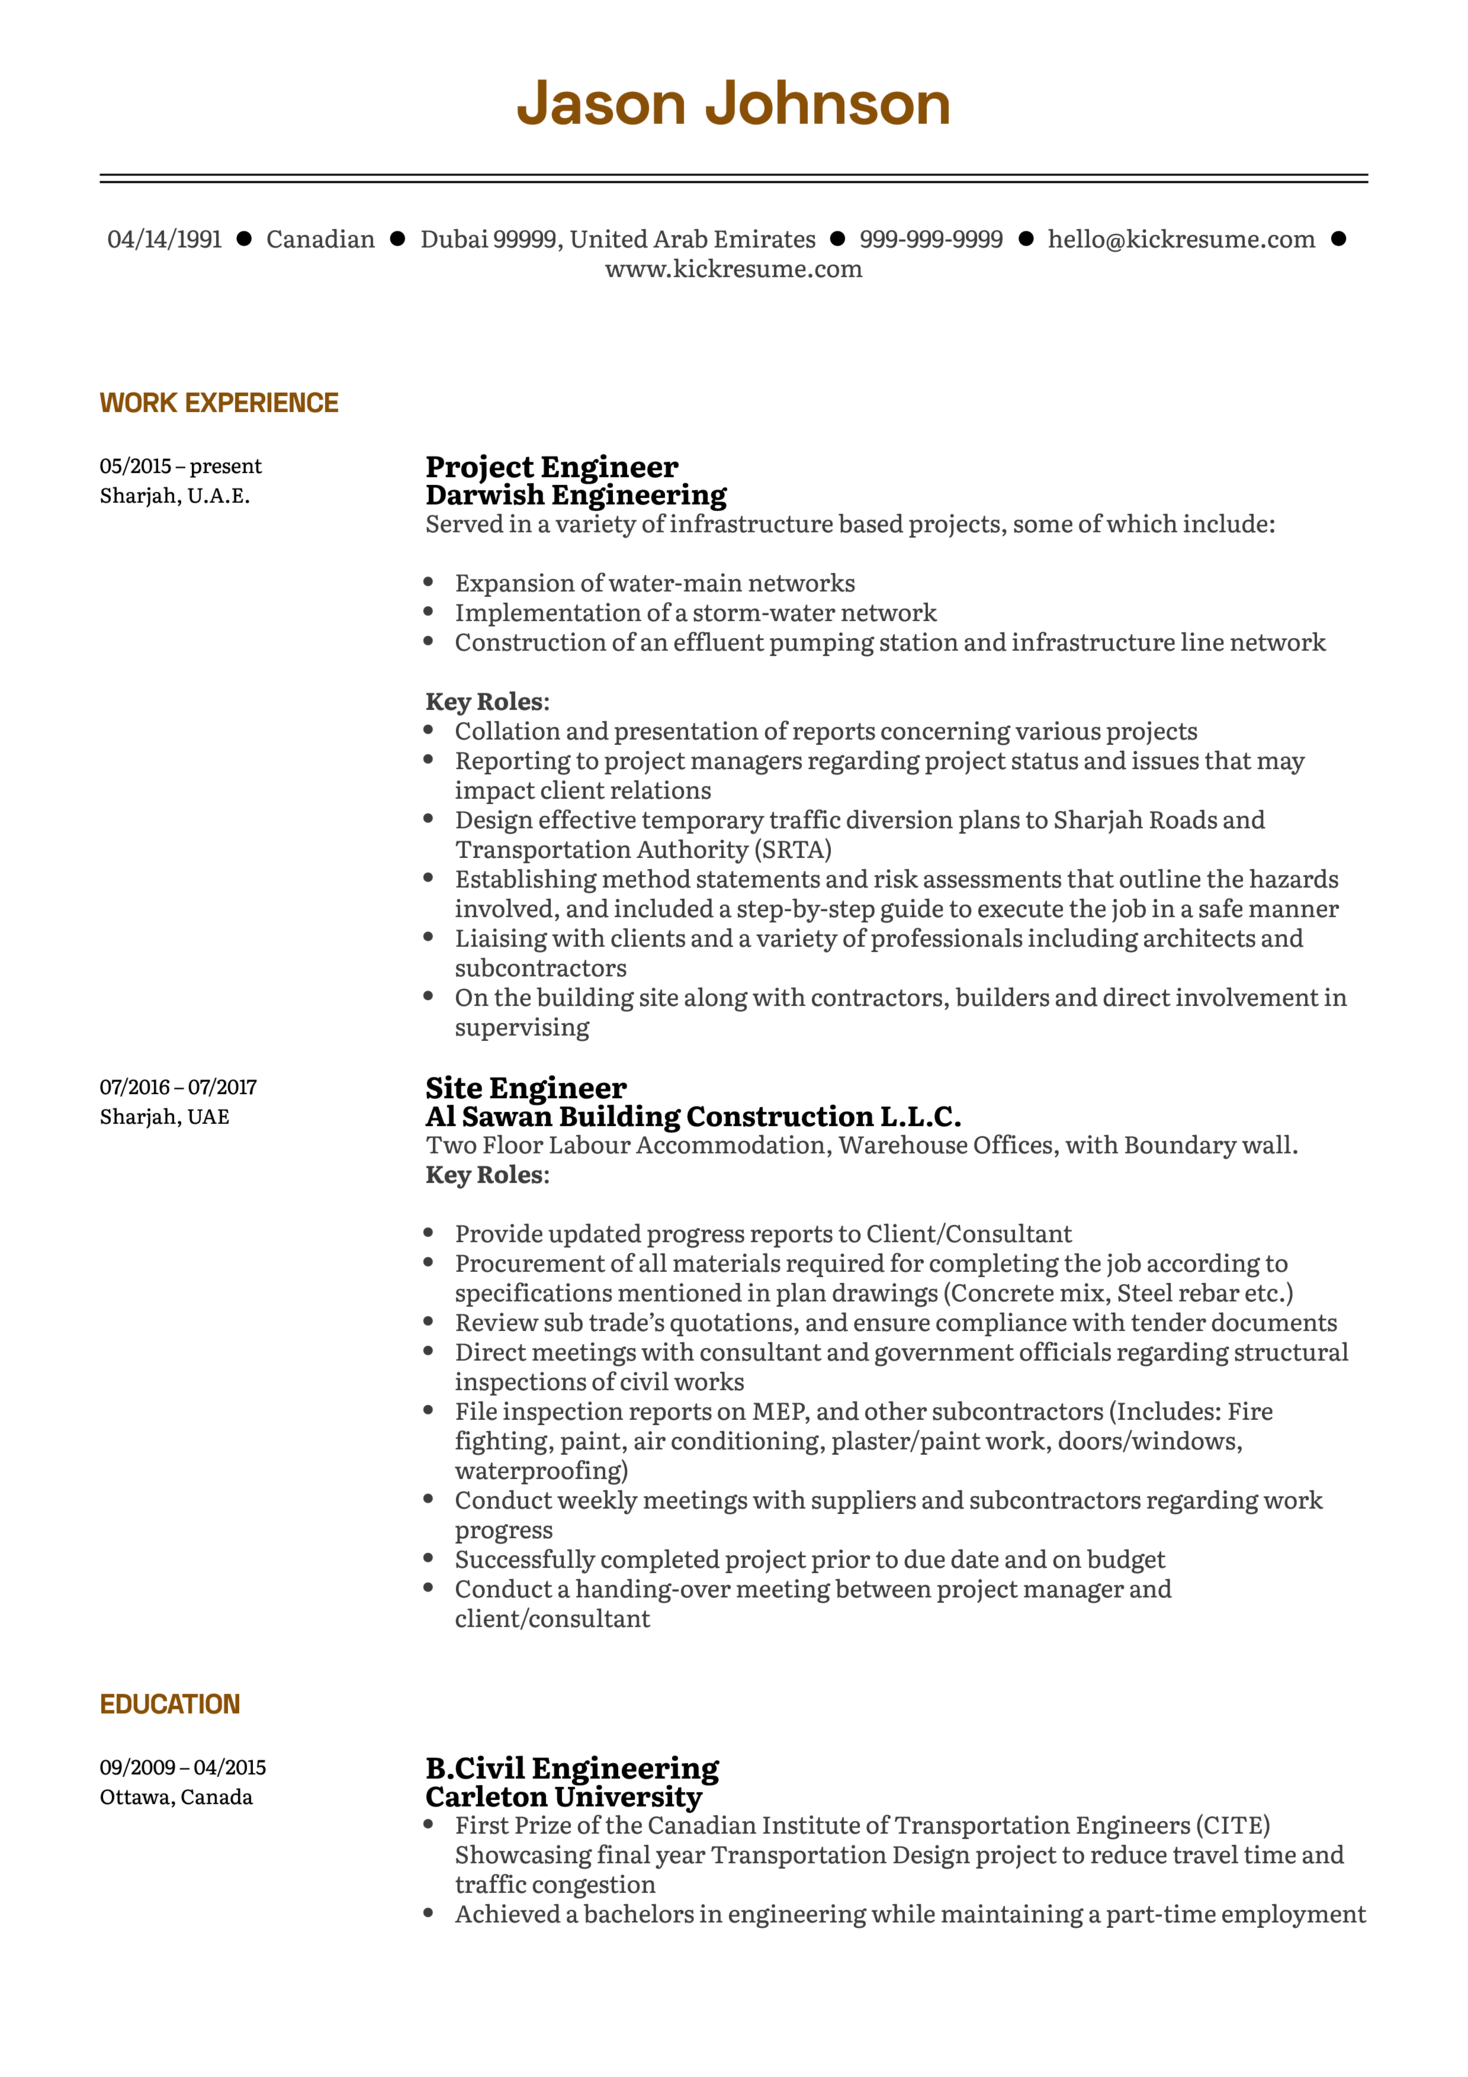 resume examples by real people  project engineer resume sample